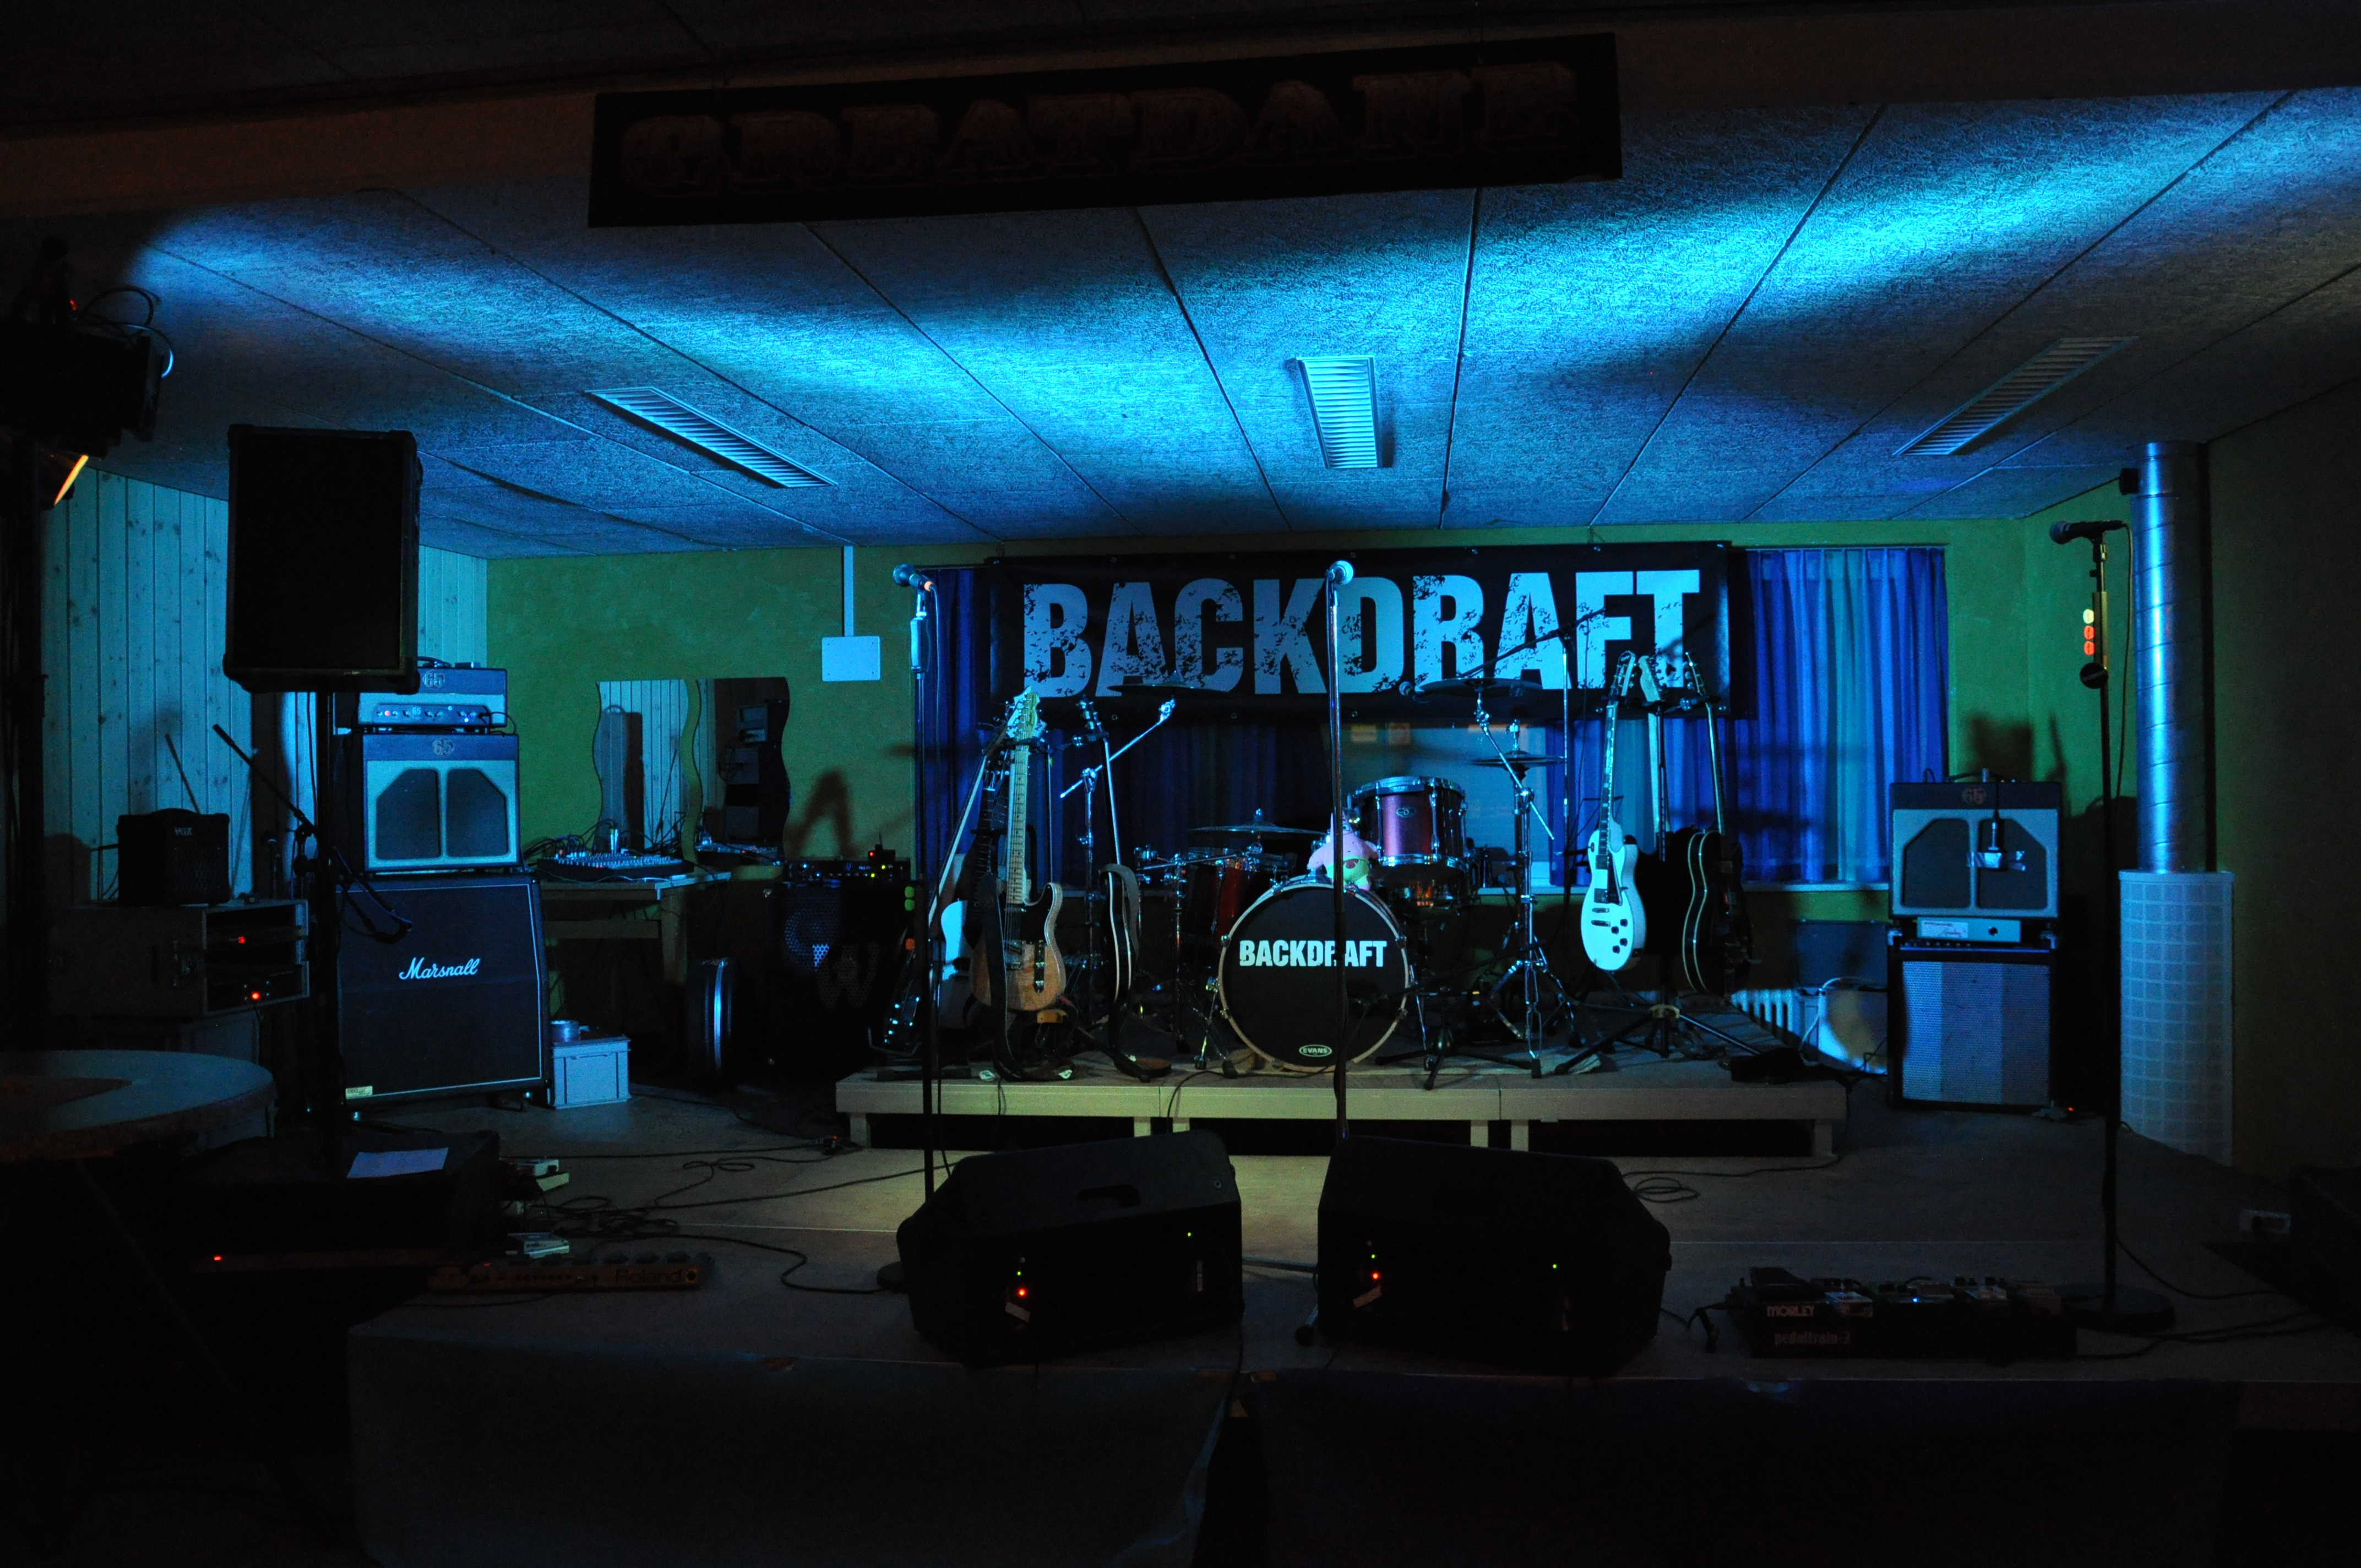 Rock im Raum, Backdraft